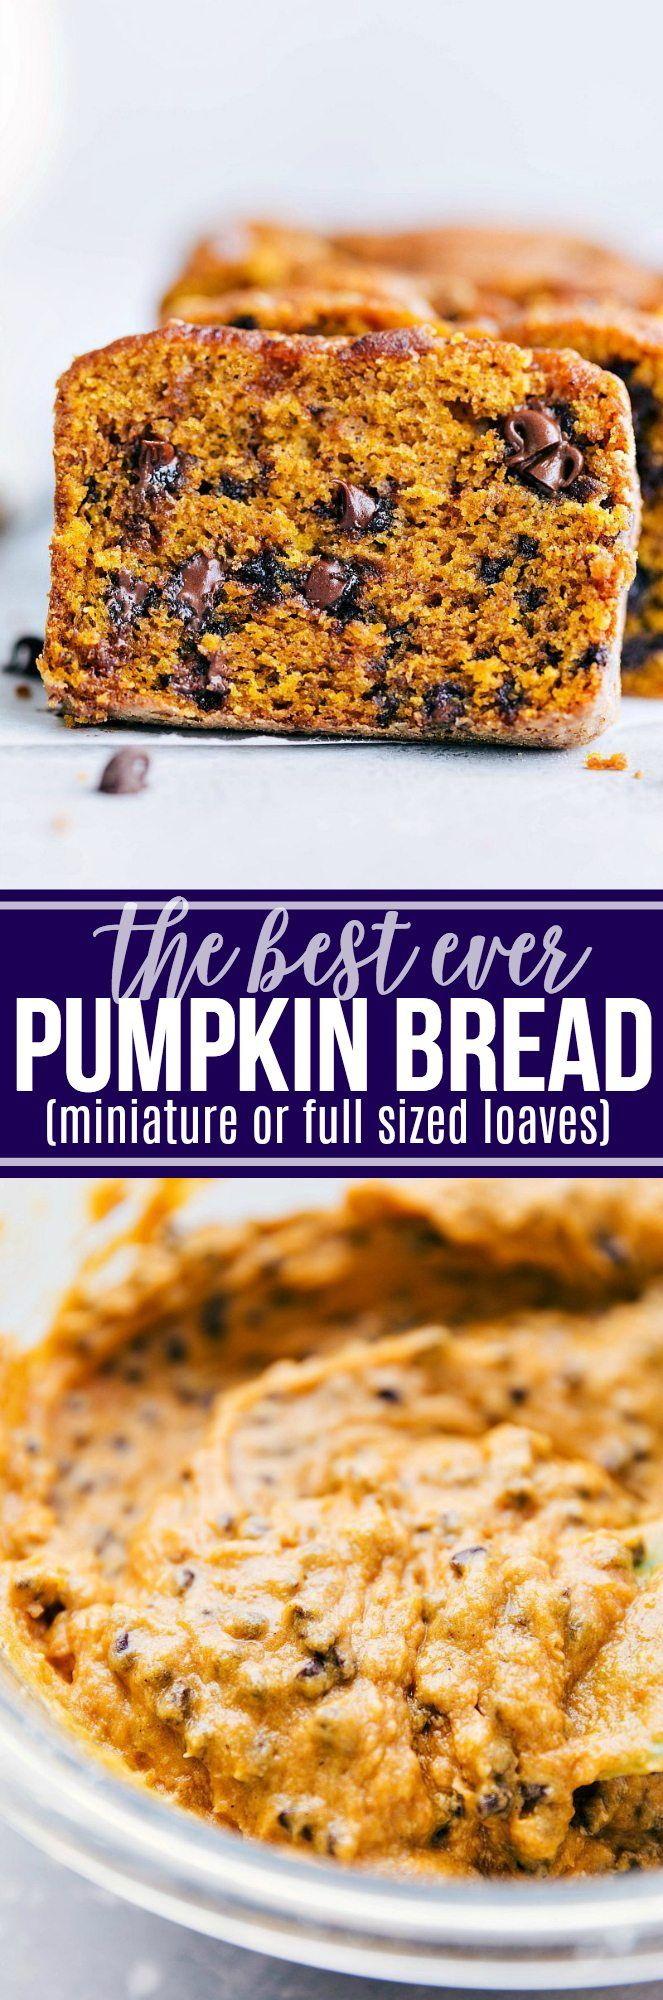 Moist pumpkin bread stuffed with mini chocolate chips (or nuts/raisins). Directions for miniature or full sized loaves of bread. The miniature loaves are great for holiday gift-giving!